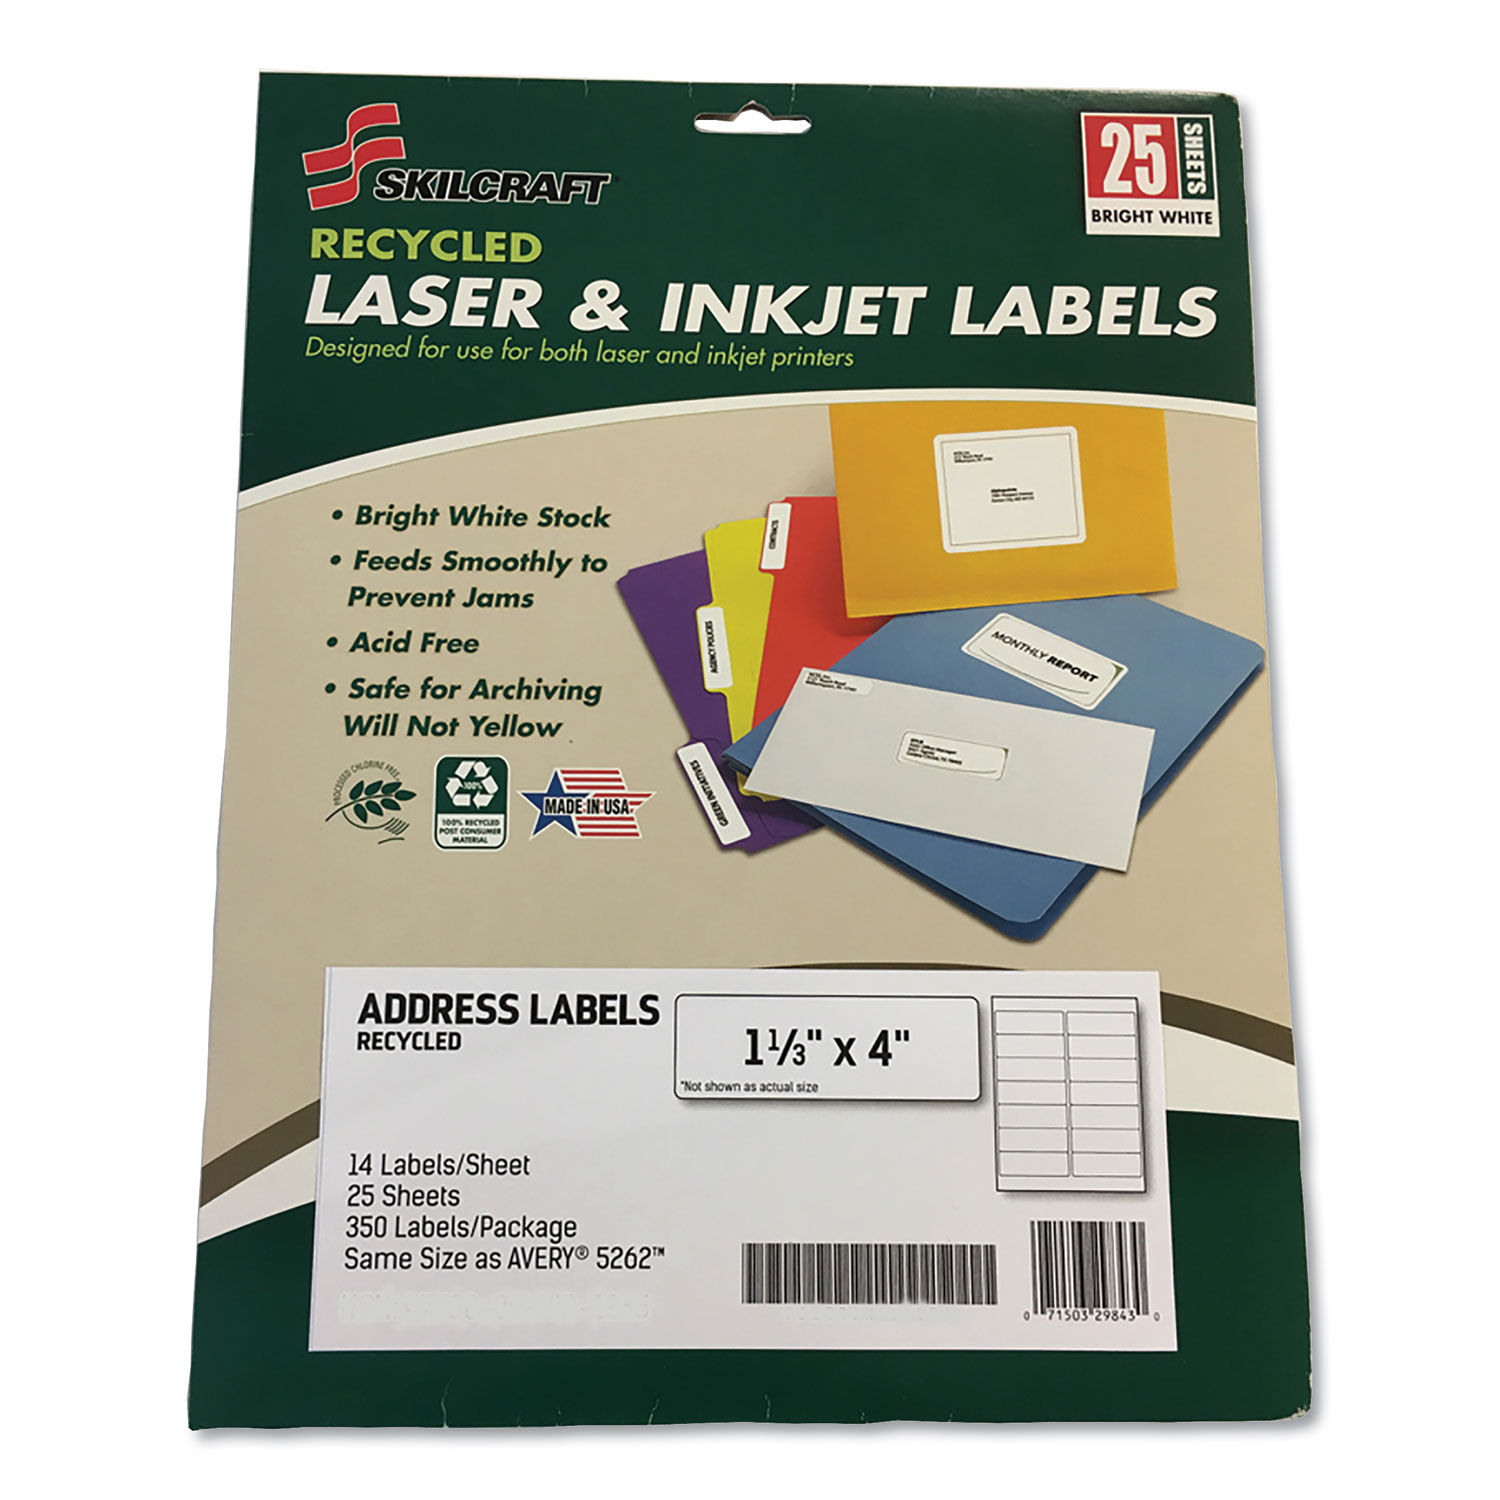 SKILCRAFT Recycled Laser and Inkjet Label, 350 Labels, GSA 7530-01-673-651